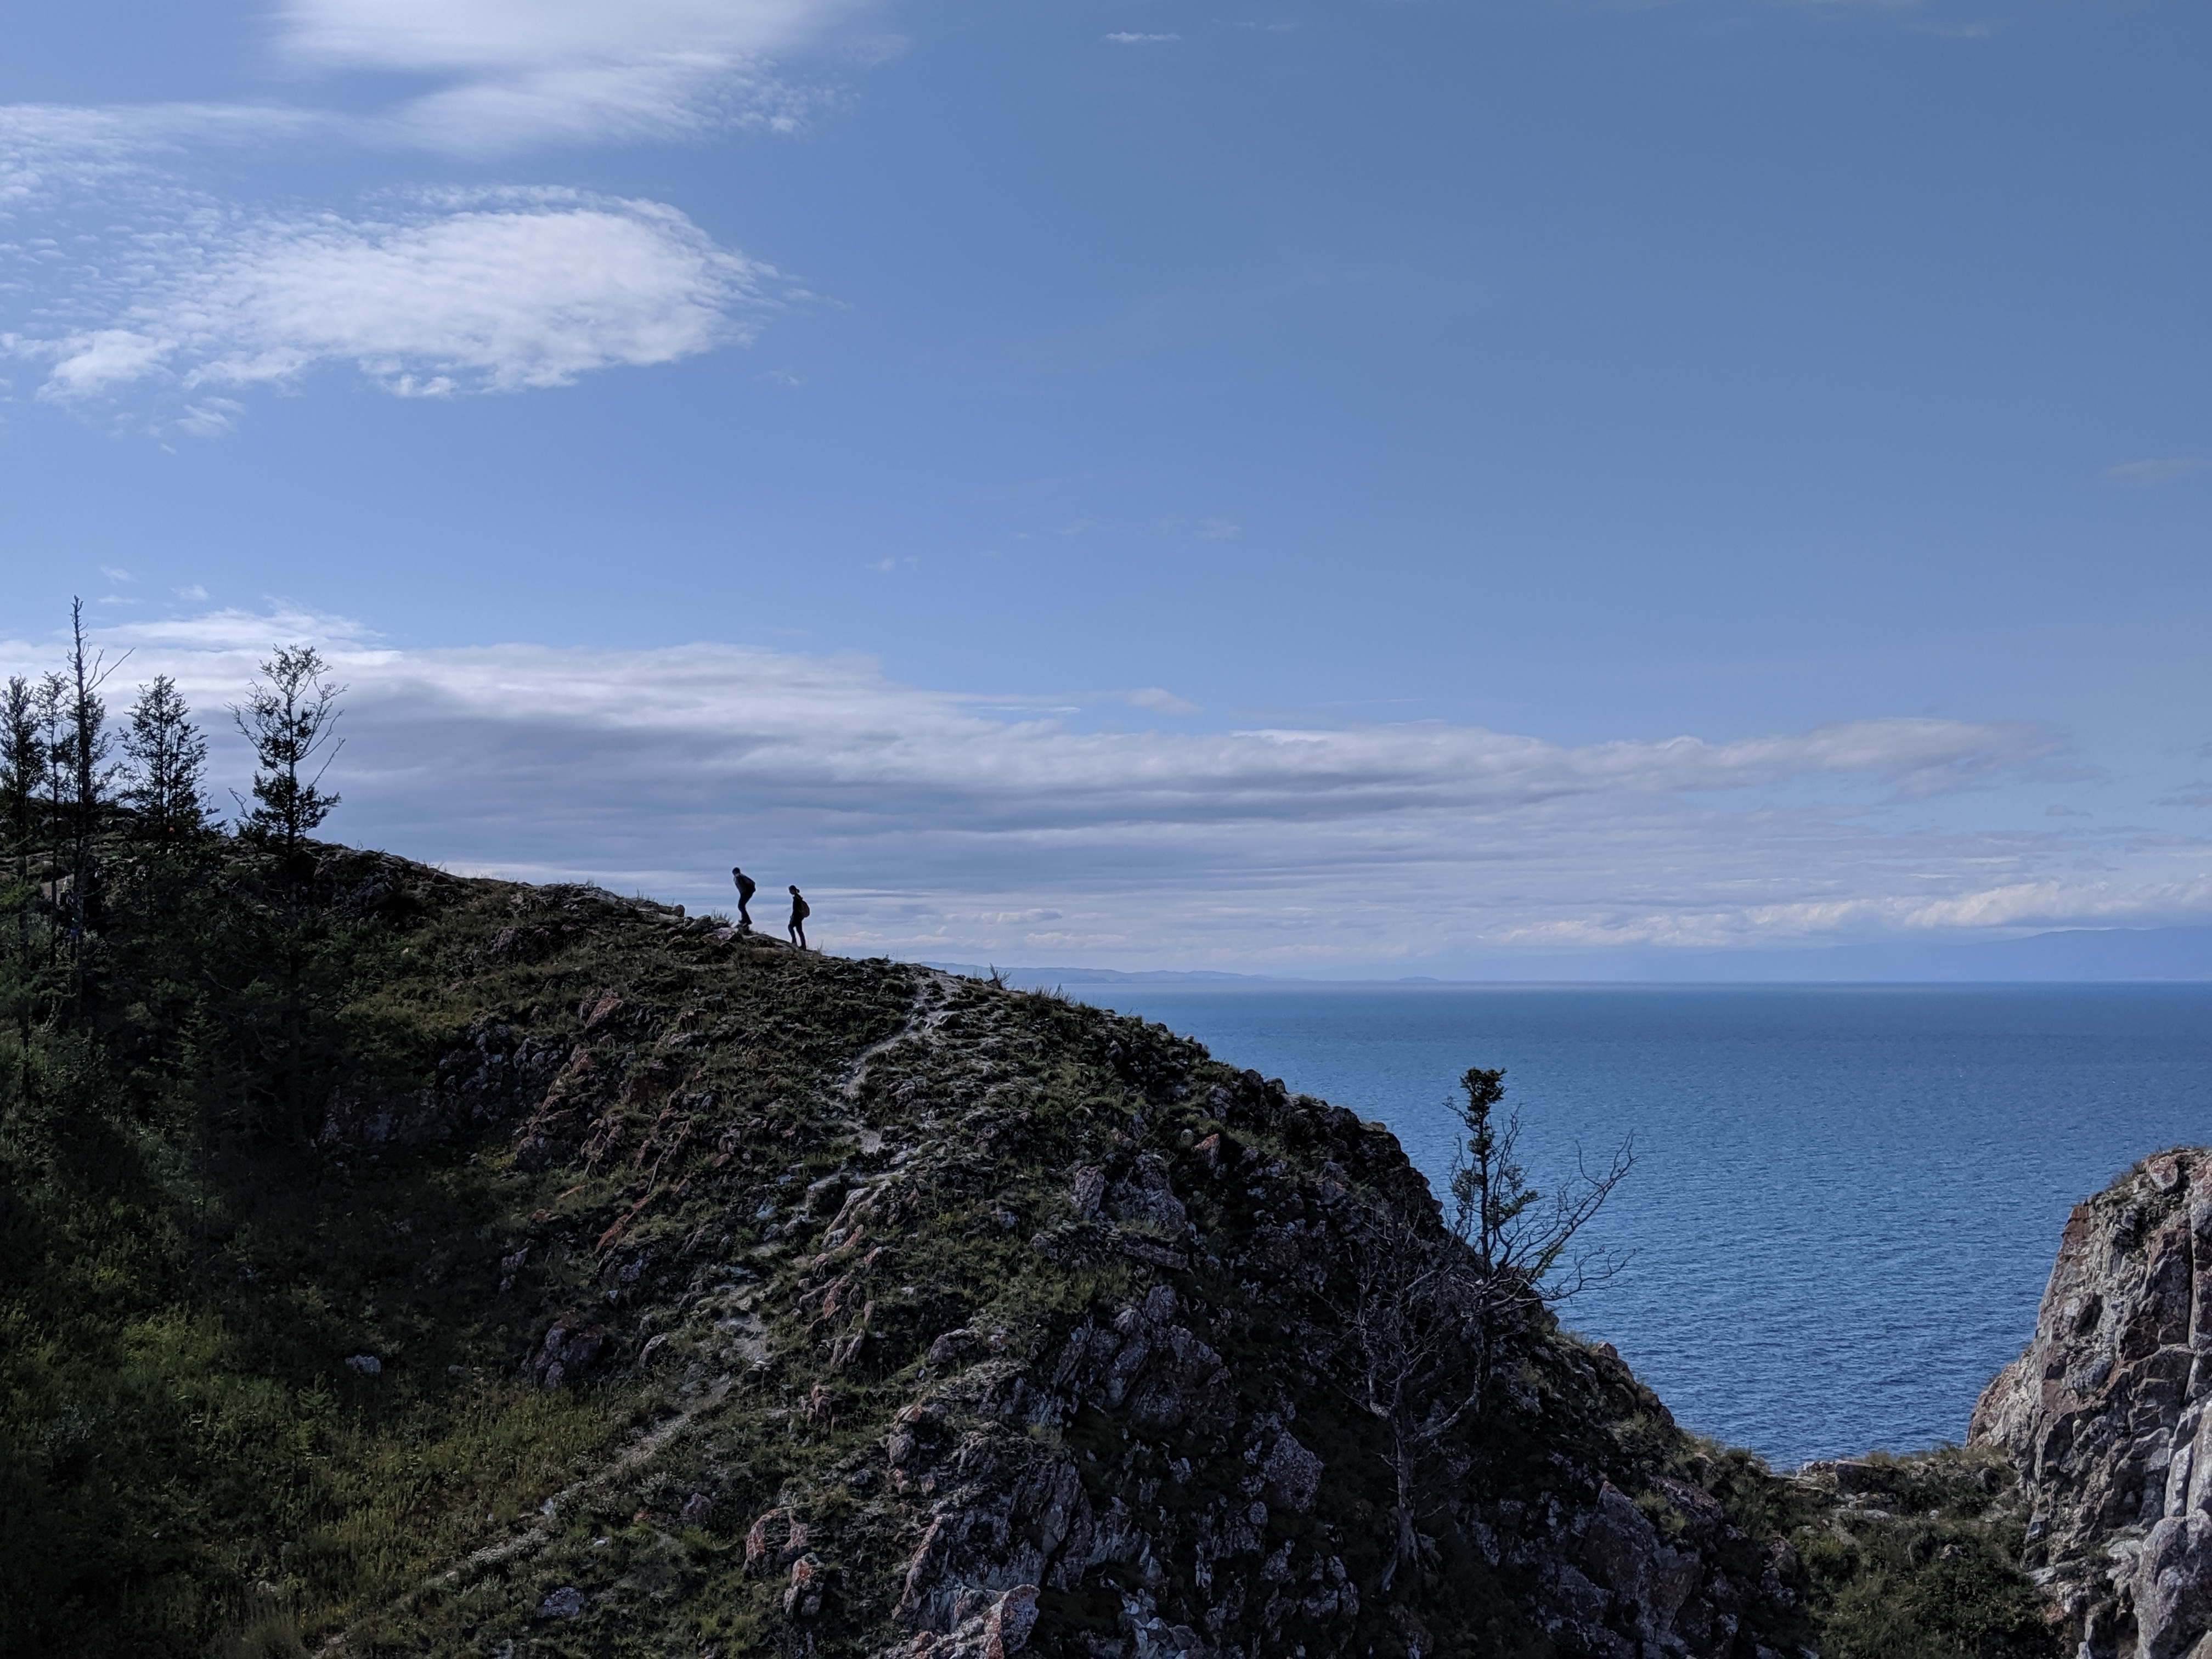 Hikers on a cliff overlooking Lake Baikal on Olkhon Island